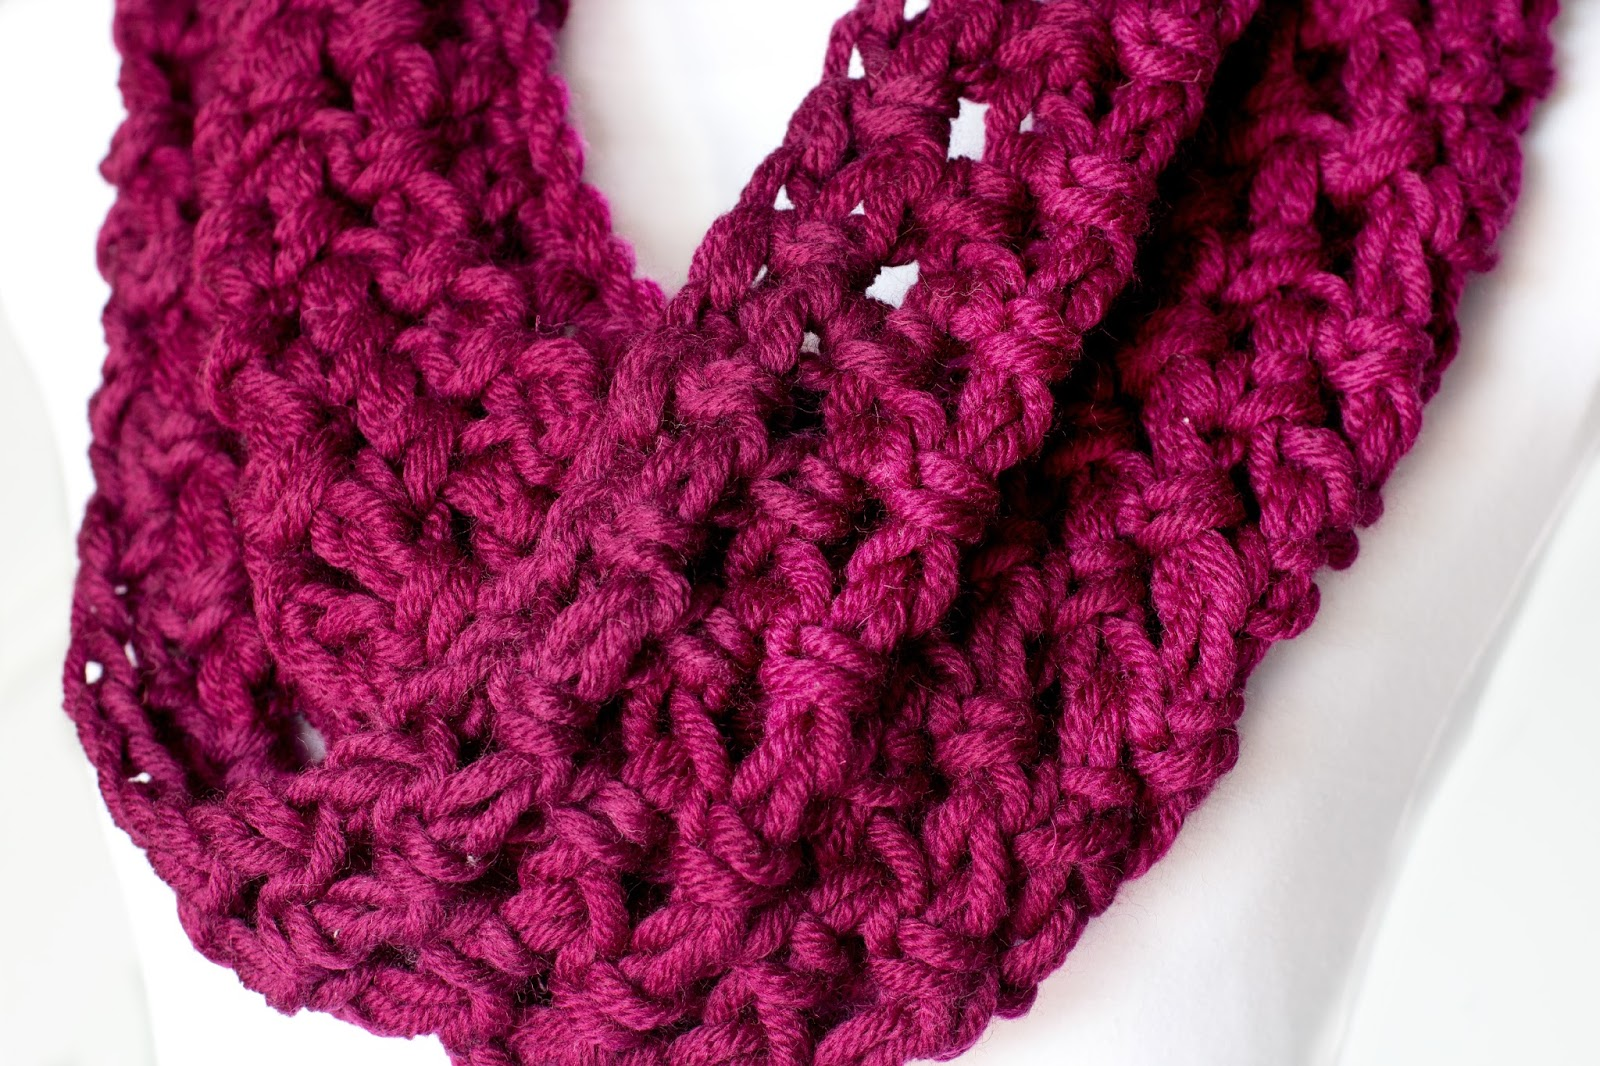 Free Crochet Pattern For Chunky Scarf : Hopeful Honey Craft, Crochet, Create: Basic Chunky Cowl ...